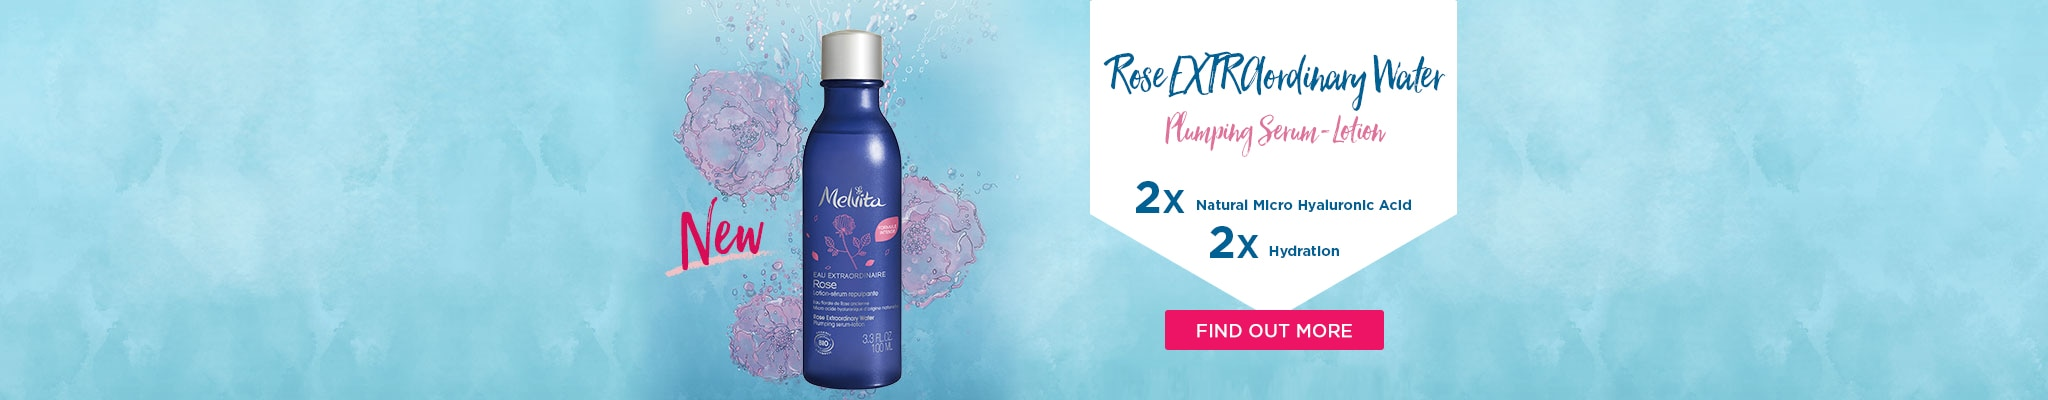 Rose Extraordinary Water